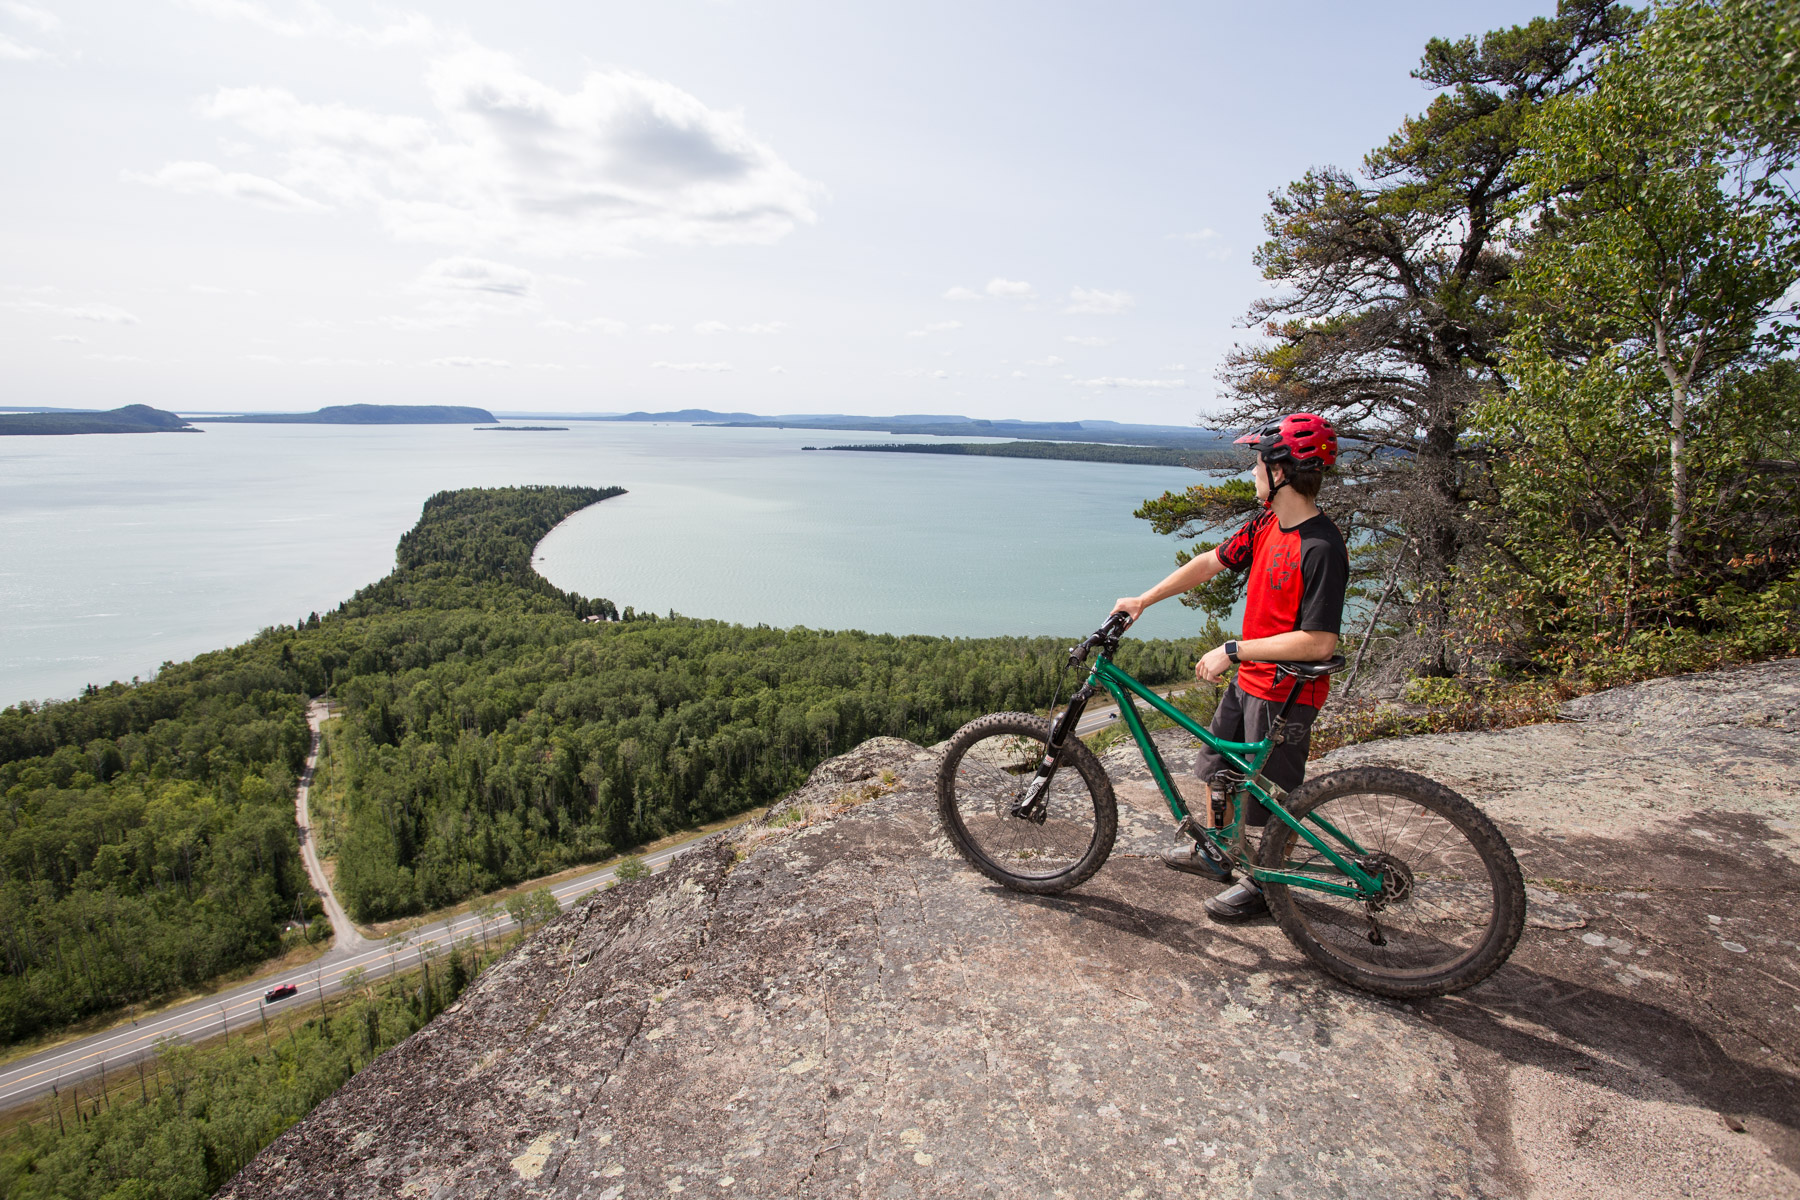 Looking for some kickass mountain bike trails? - Click on image to read at Northern Ontario Travel